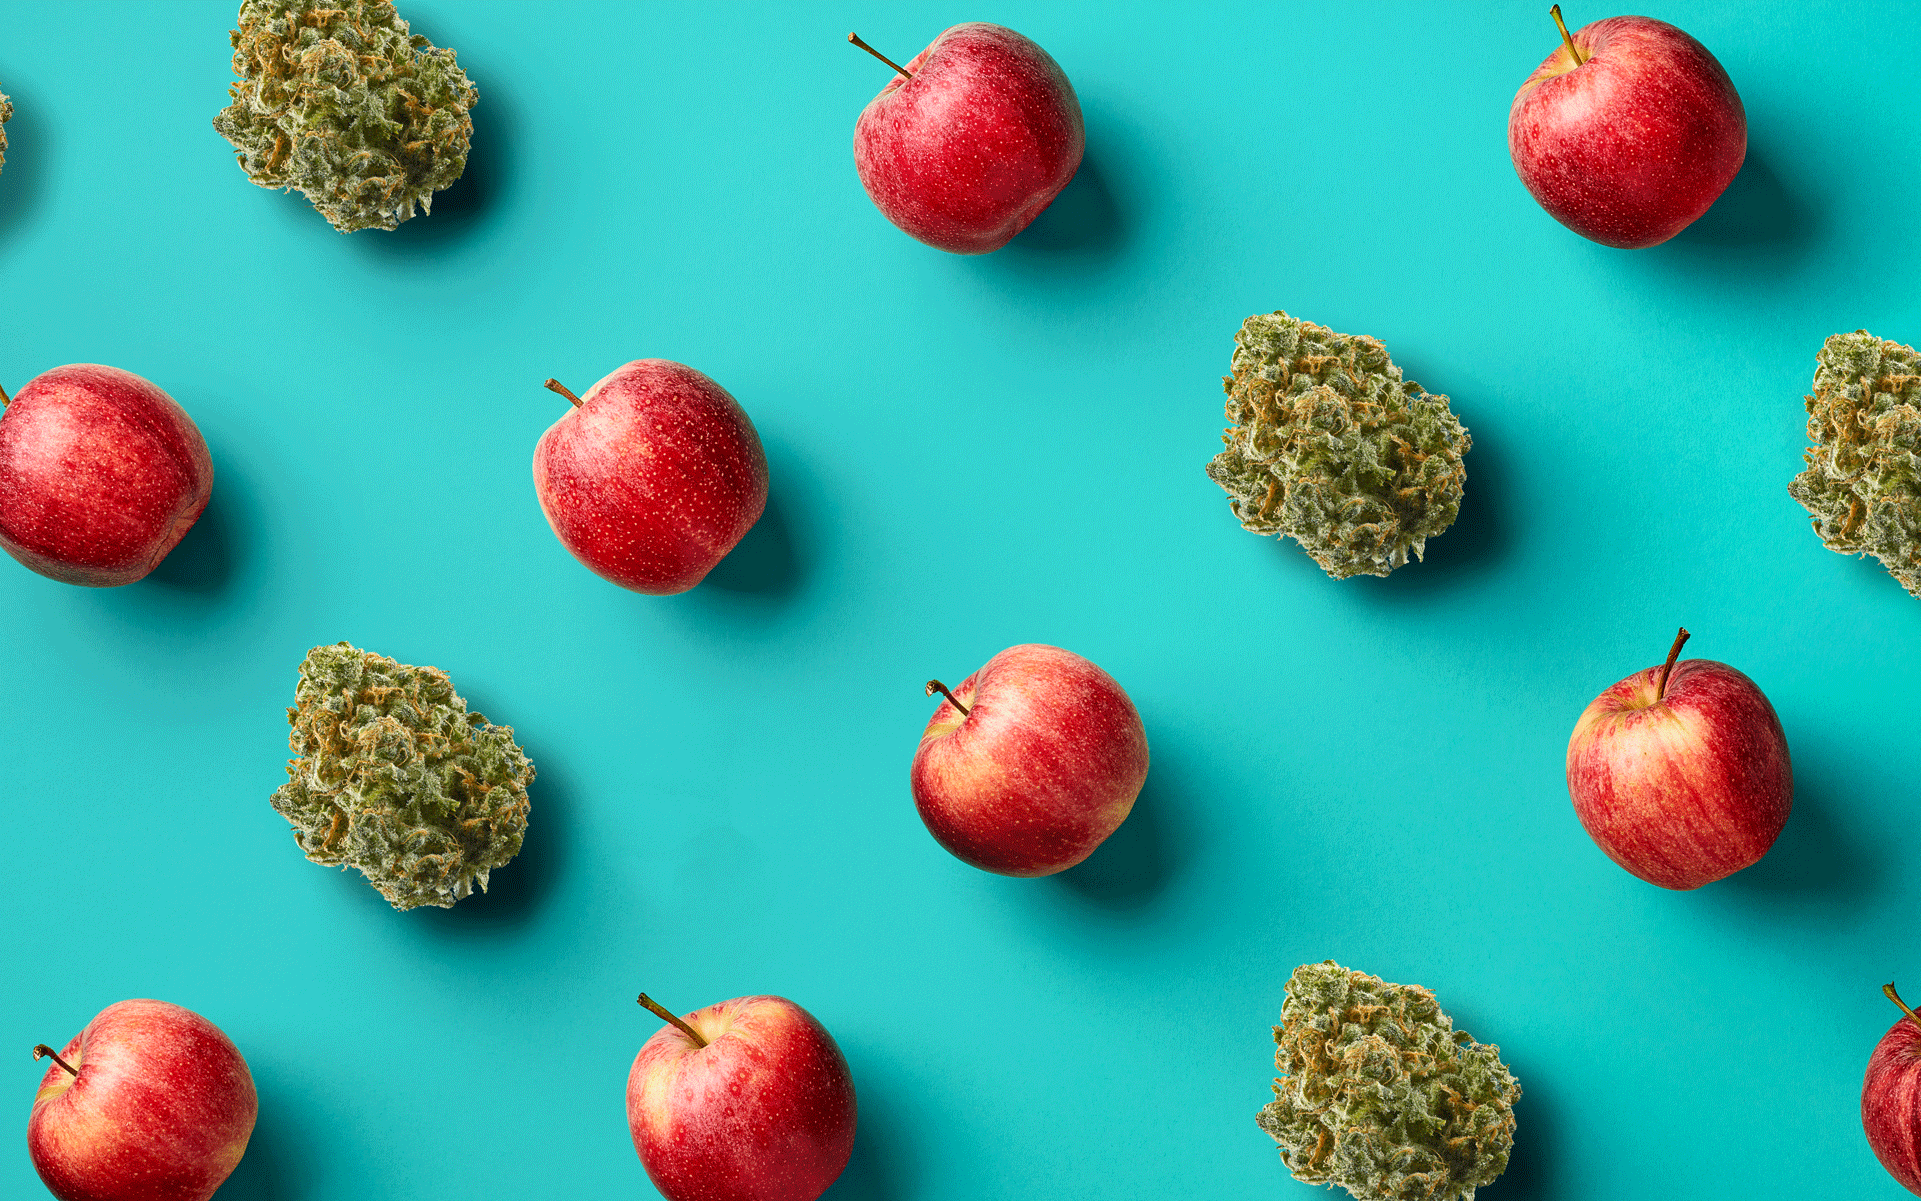 Elevate Your Day With These Tasty Apple Cannabis Strains